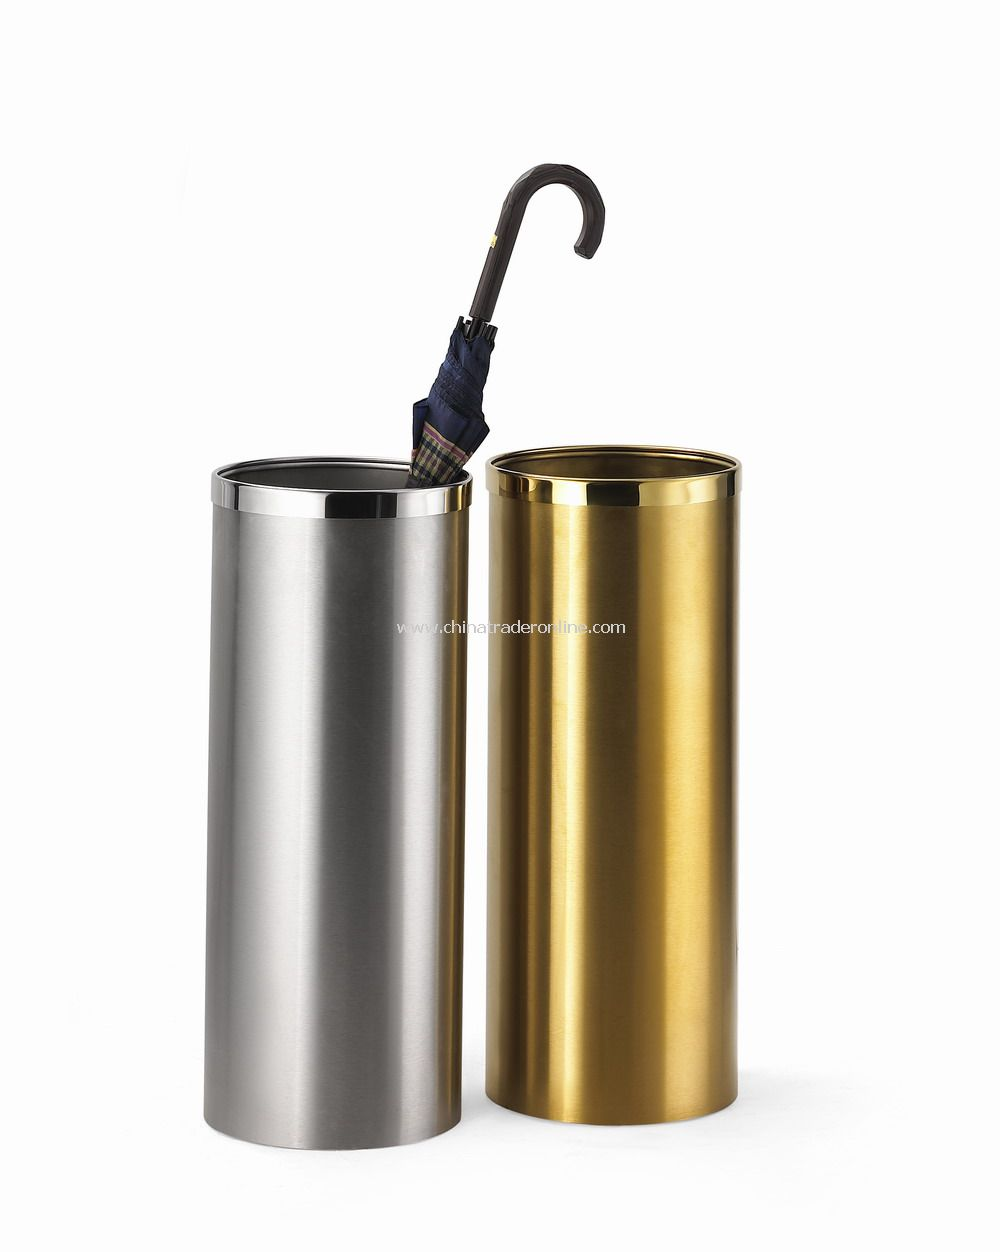 STAINLESS STEEL UMBRELLA HOLDER